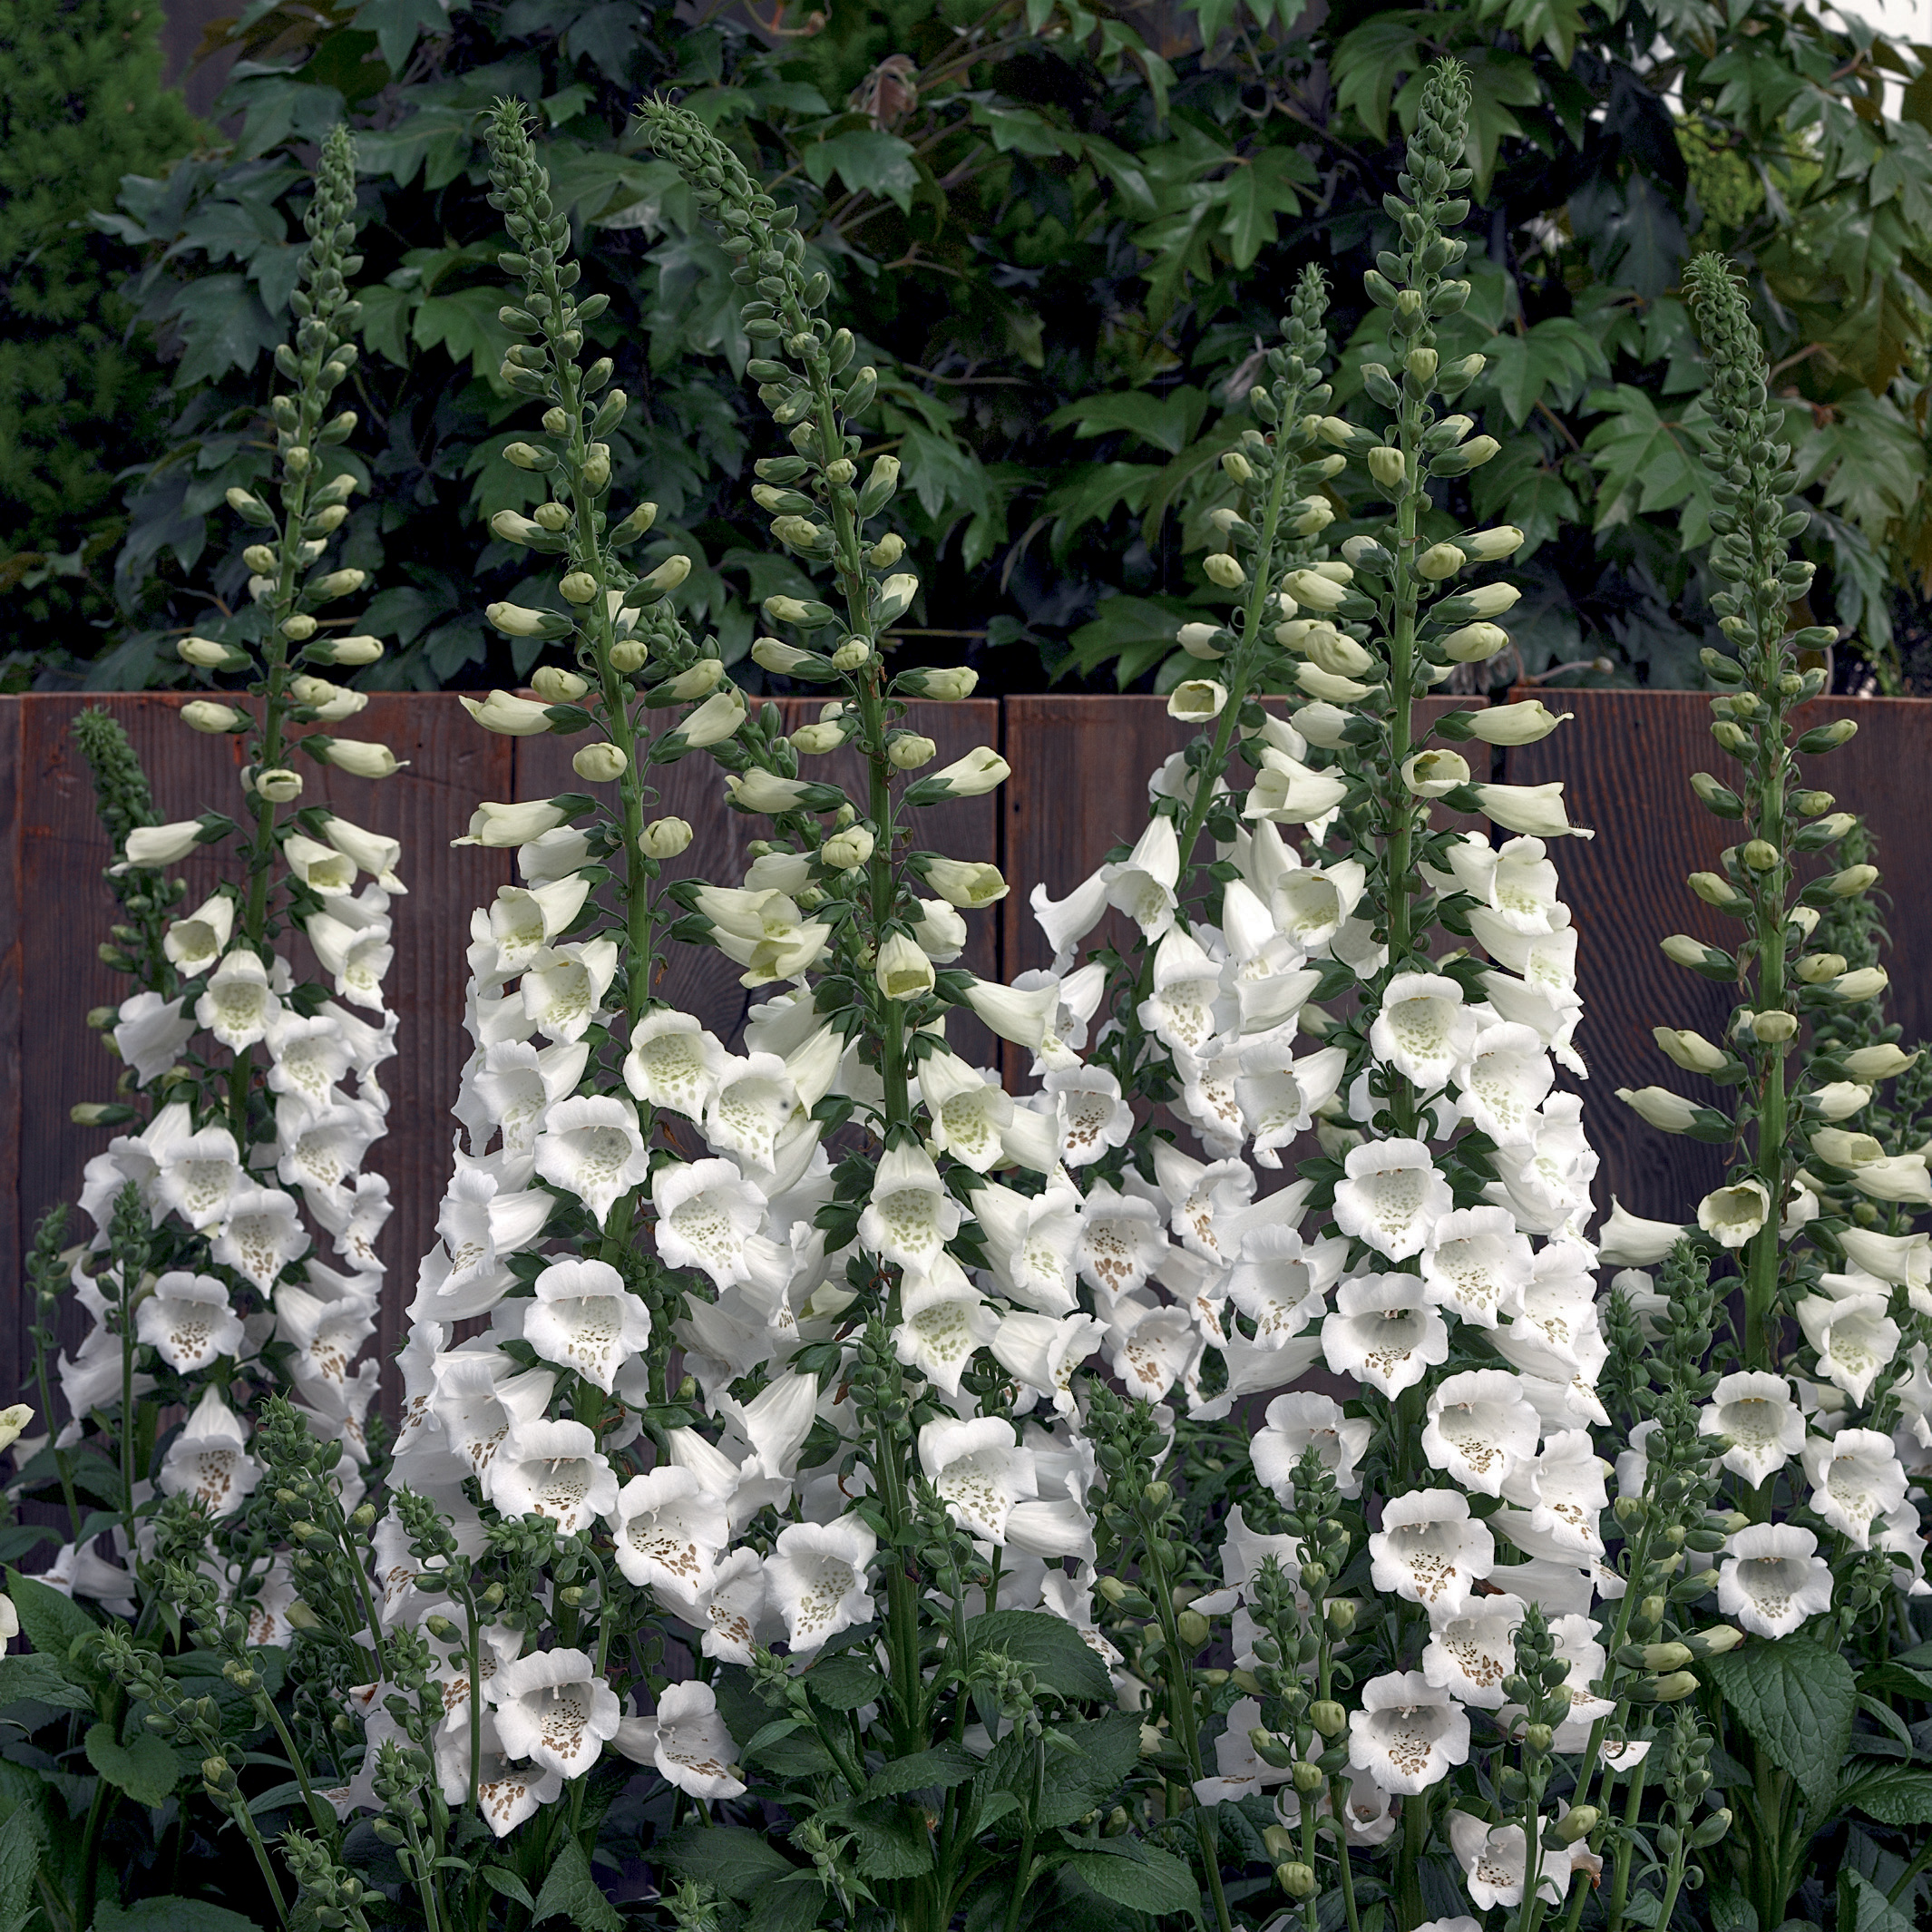 HR_Seed_Digitalis_Camelot™_Camelot™_White_70019383.jpg